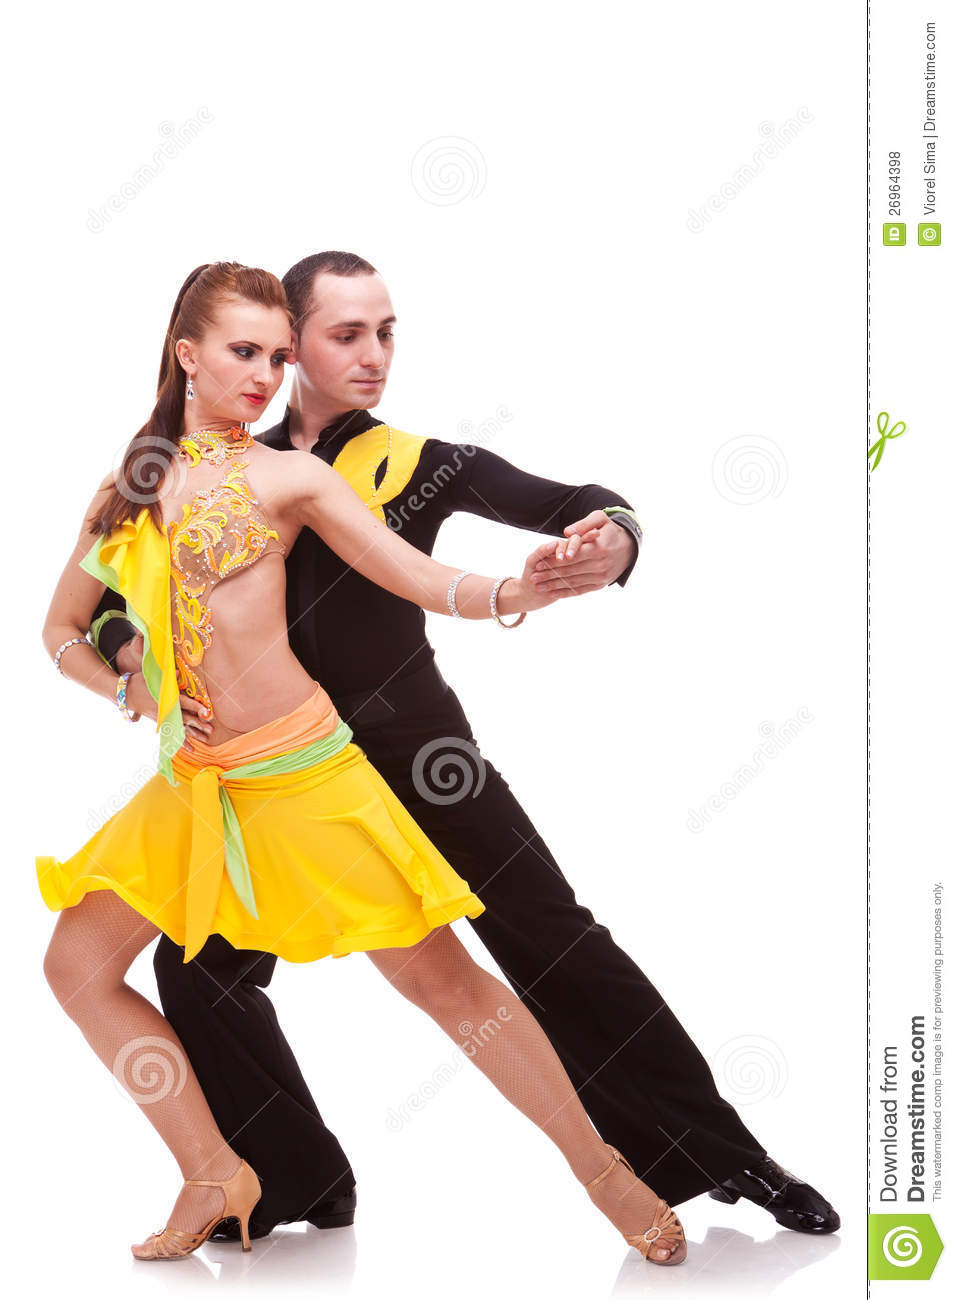 couples de danse de salsa dans la salle de bal photo stock image 26964398. Black Bedroom Furniture Sets. Home Design Ideas